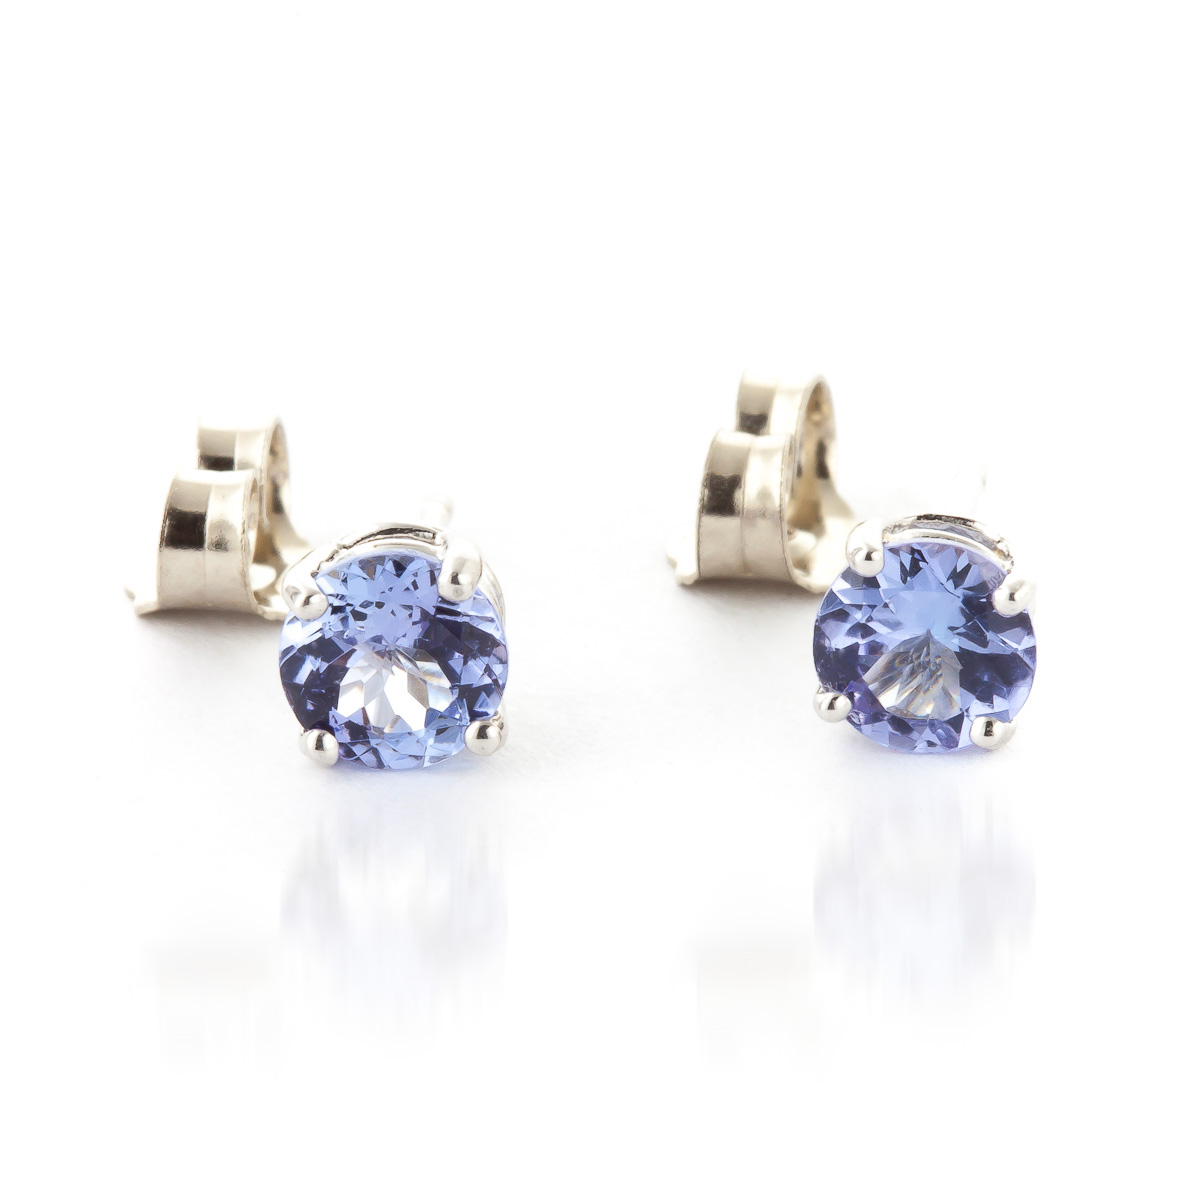 Tanzanite Stud Earrings 0.95ctw in 9ct White Gold